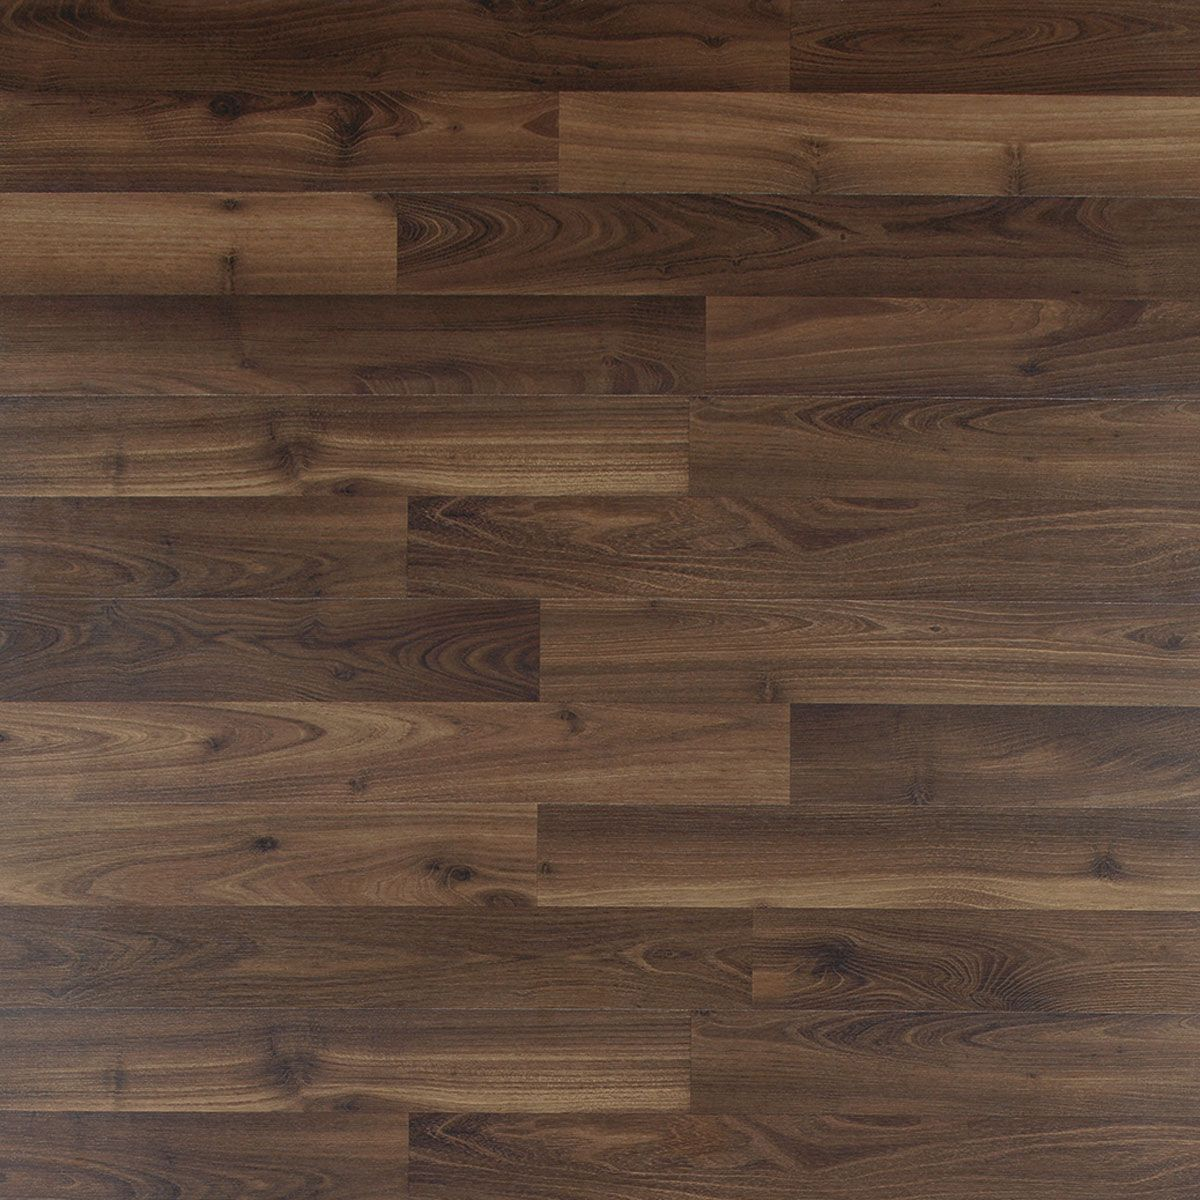 Google image result for Wood tile flooring